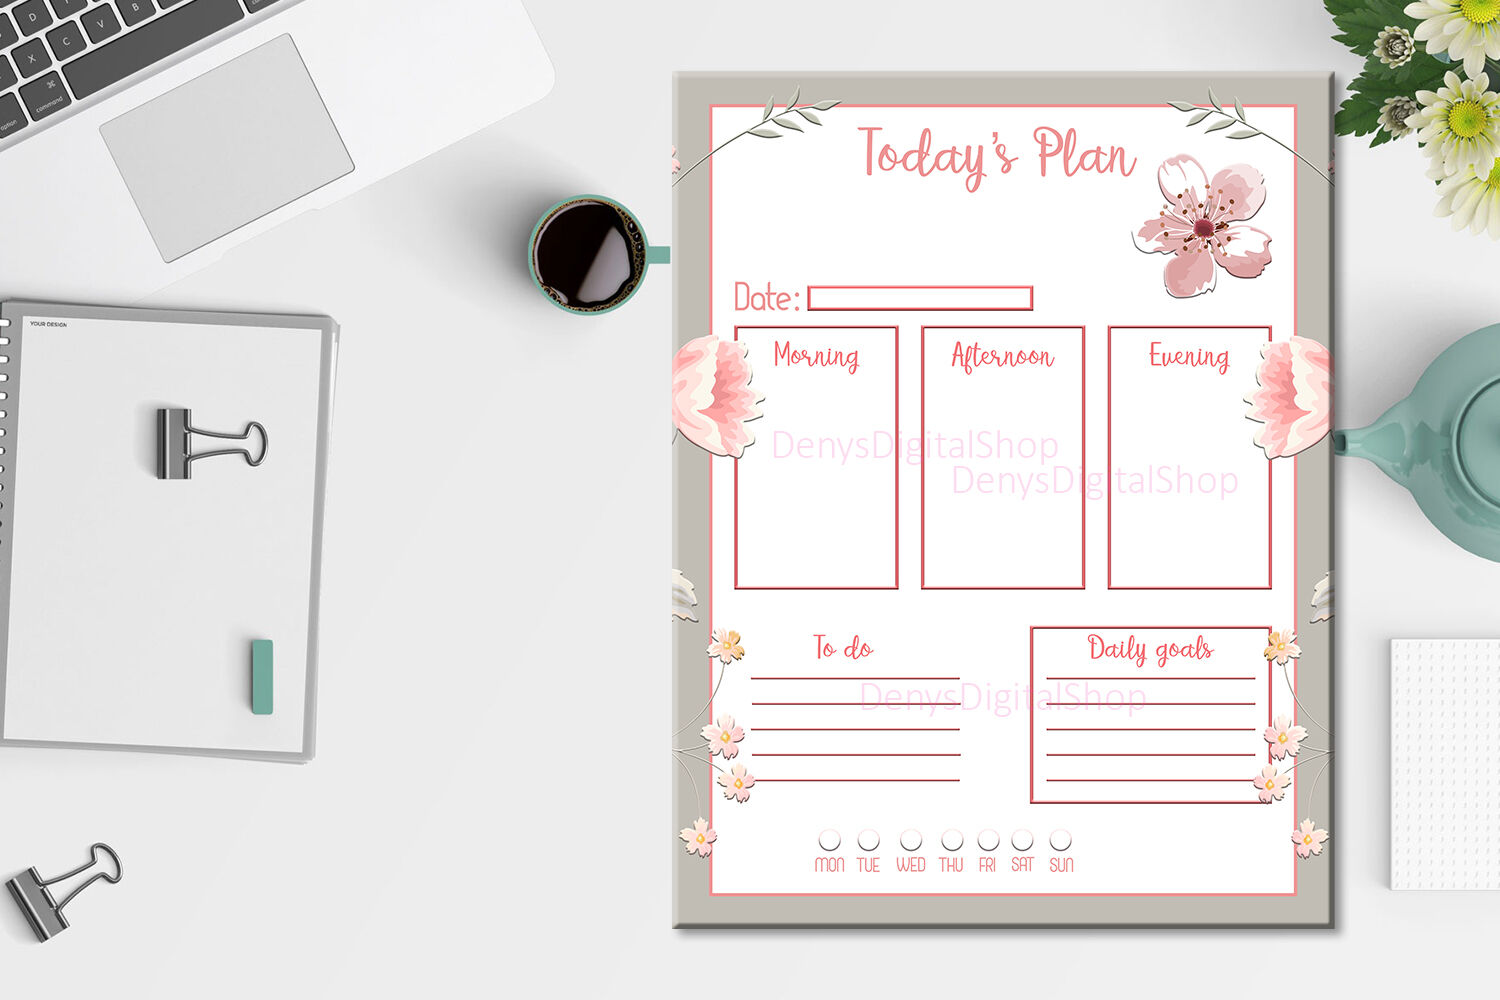 Daily Planner Minimalist Minimalistic Organize The Day By